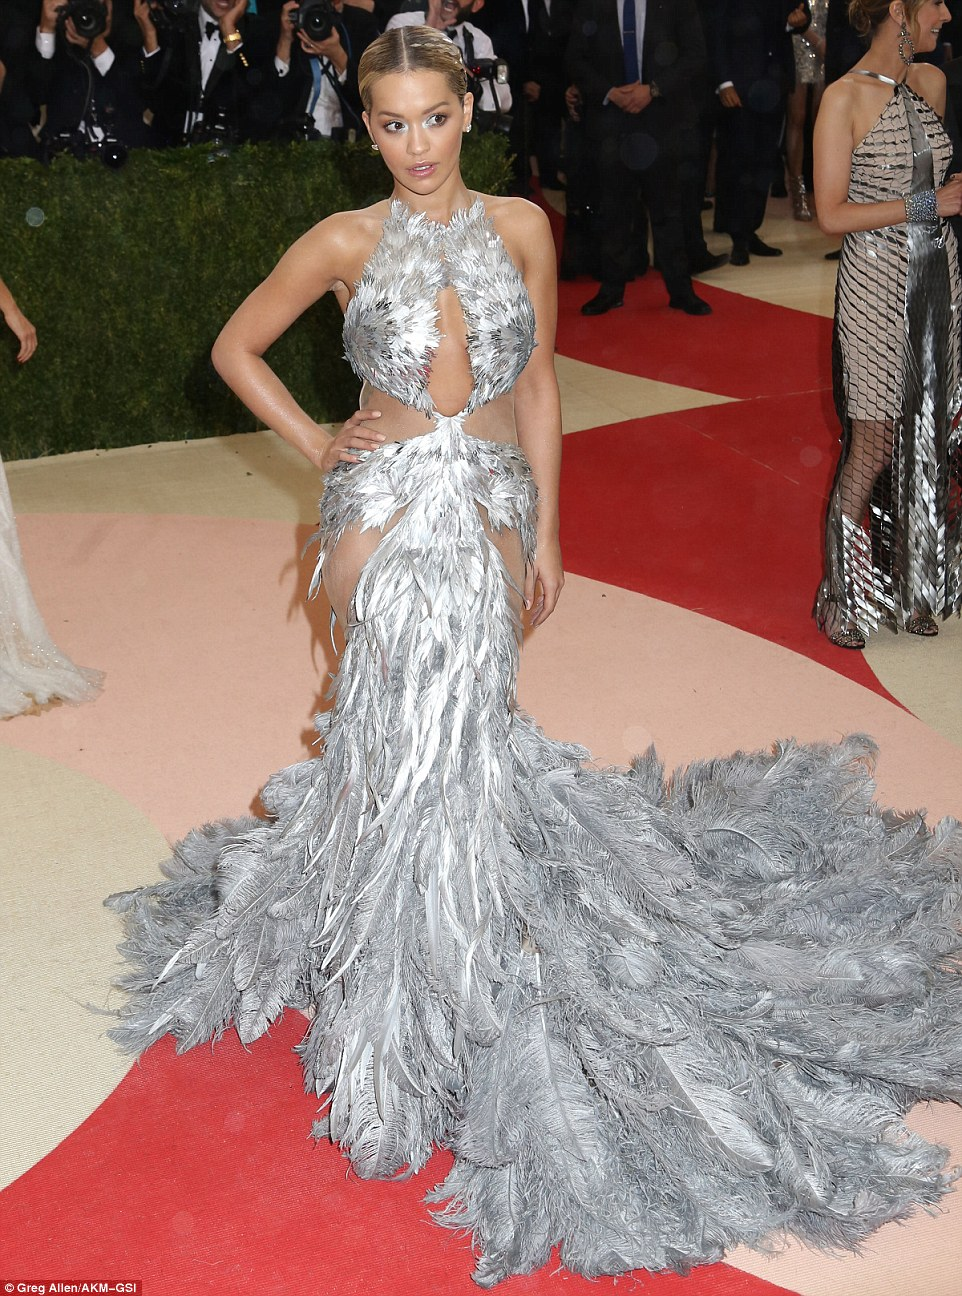 Rita Ora wears revealing feathered gown to the Met Gala 2016